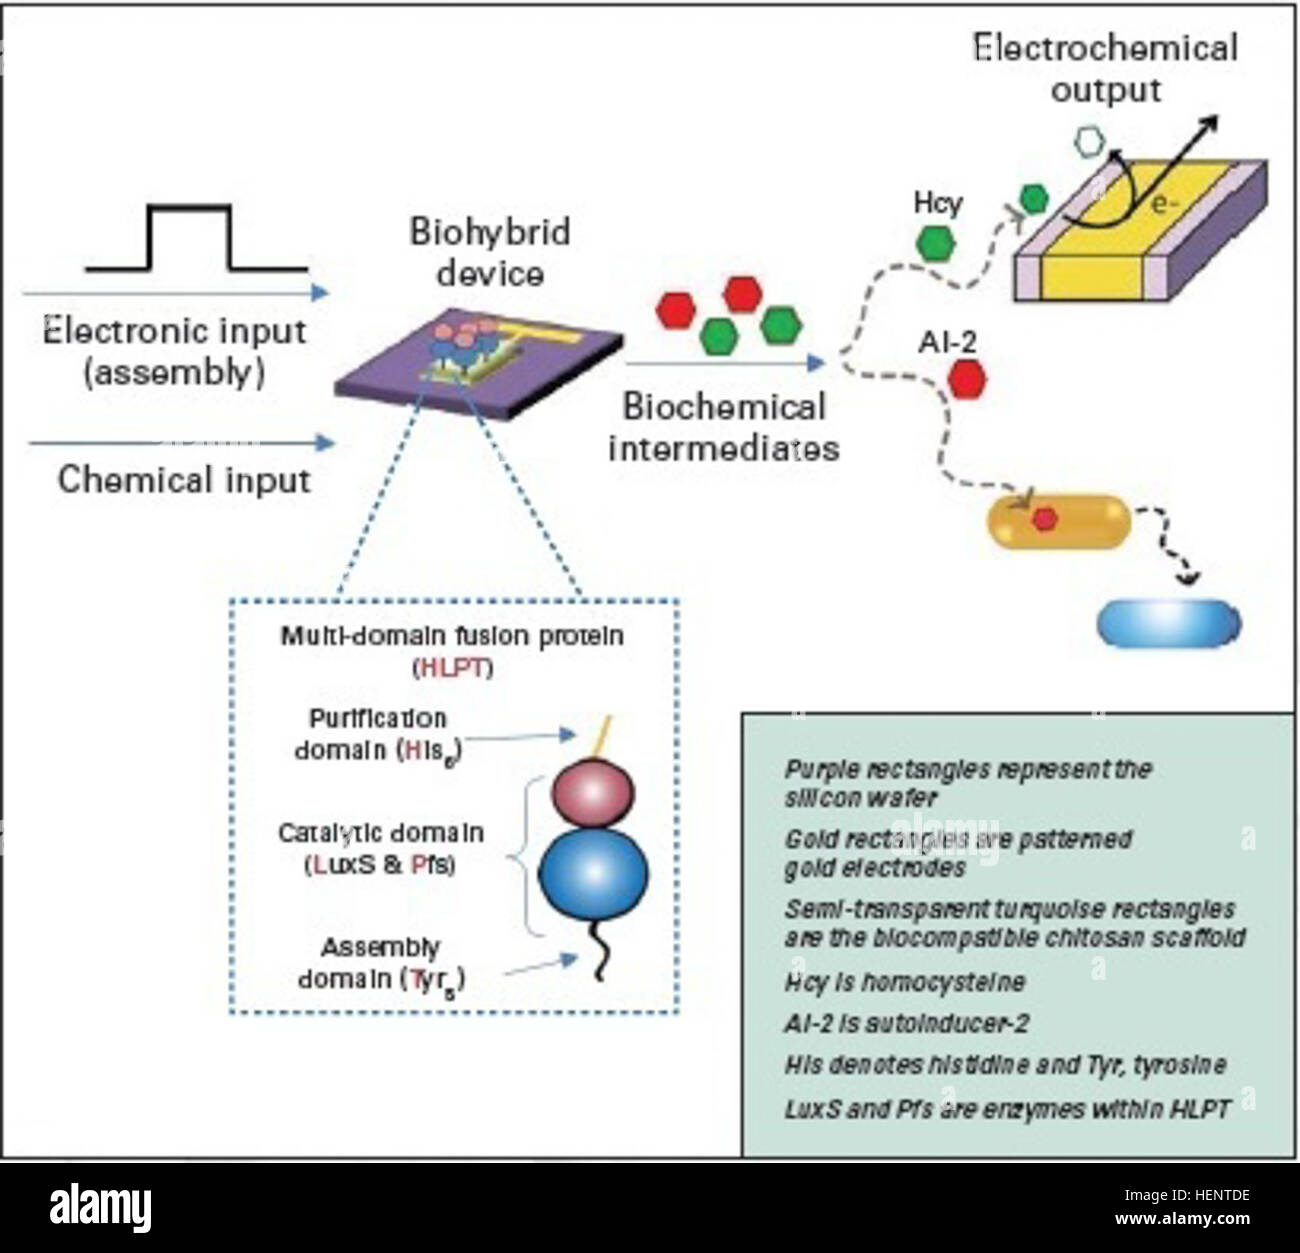 Biohybrid device controlled by electronic signals - The biohybrid device receives both chemical (enzyme reaction - Stock Image